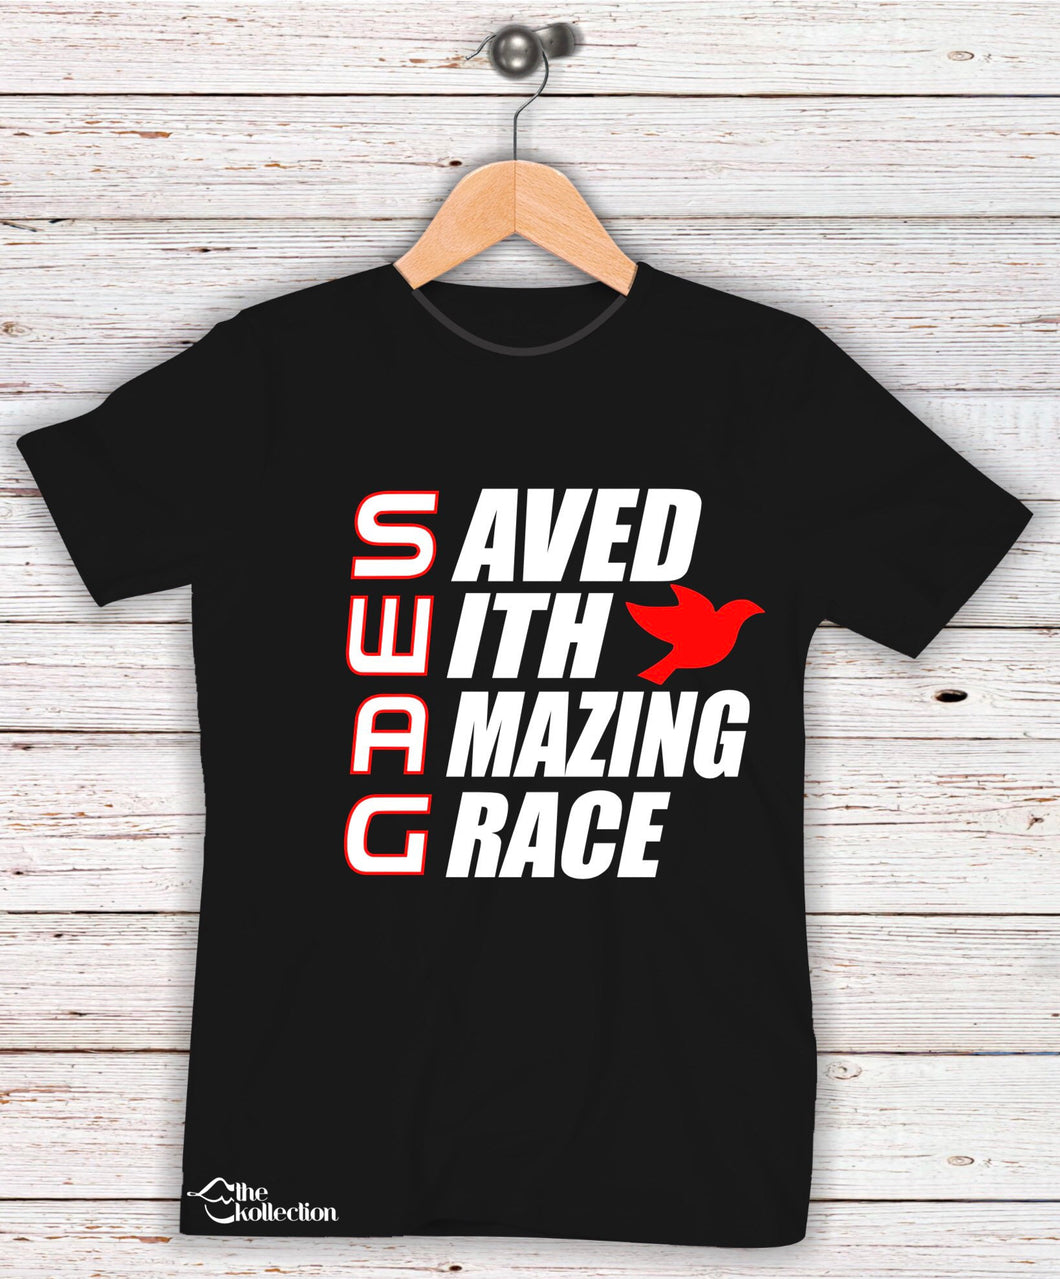 SWAG - Saved With Amazing Grace